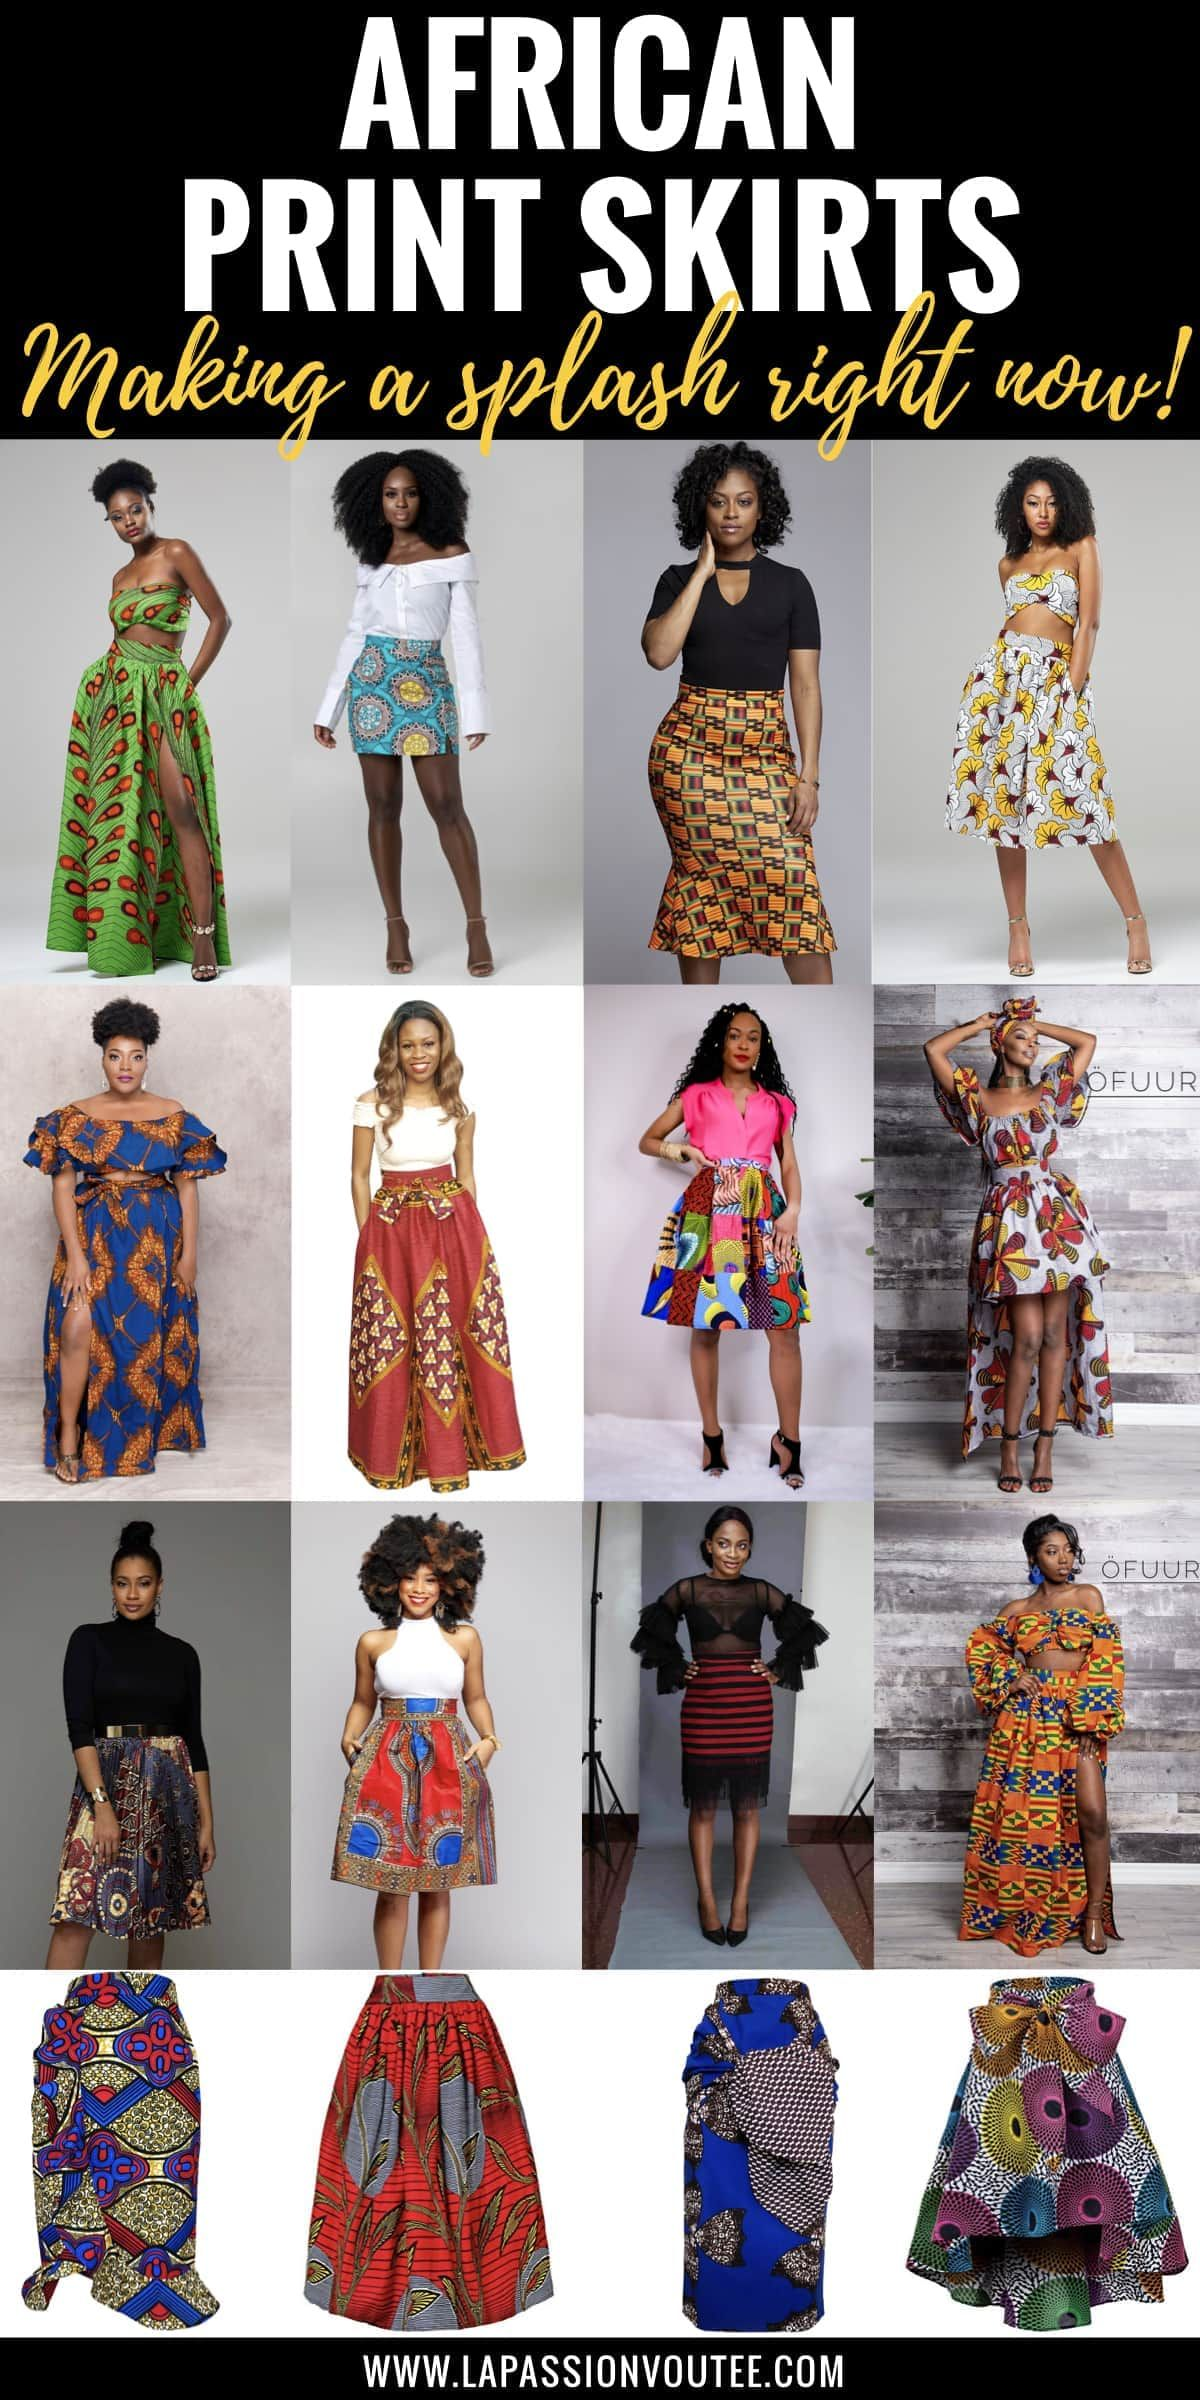 23 Hottest African Print Skirts for Women in 2021